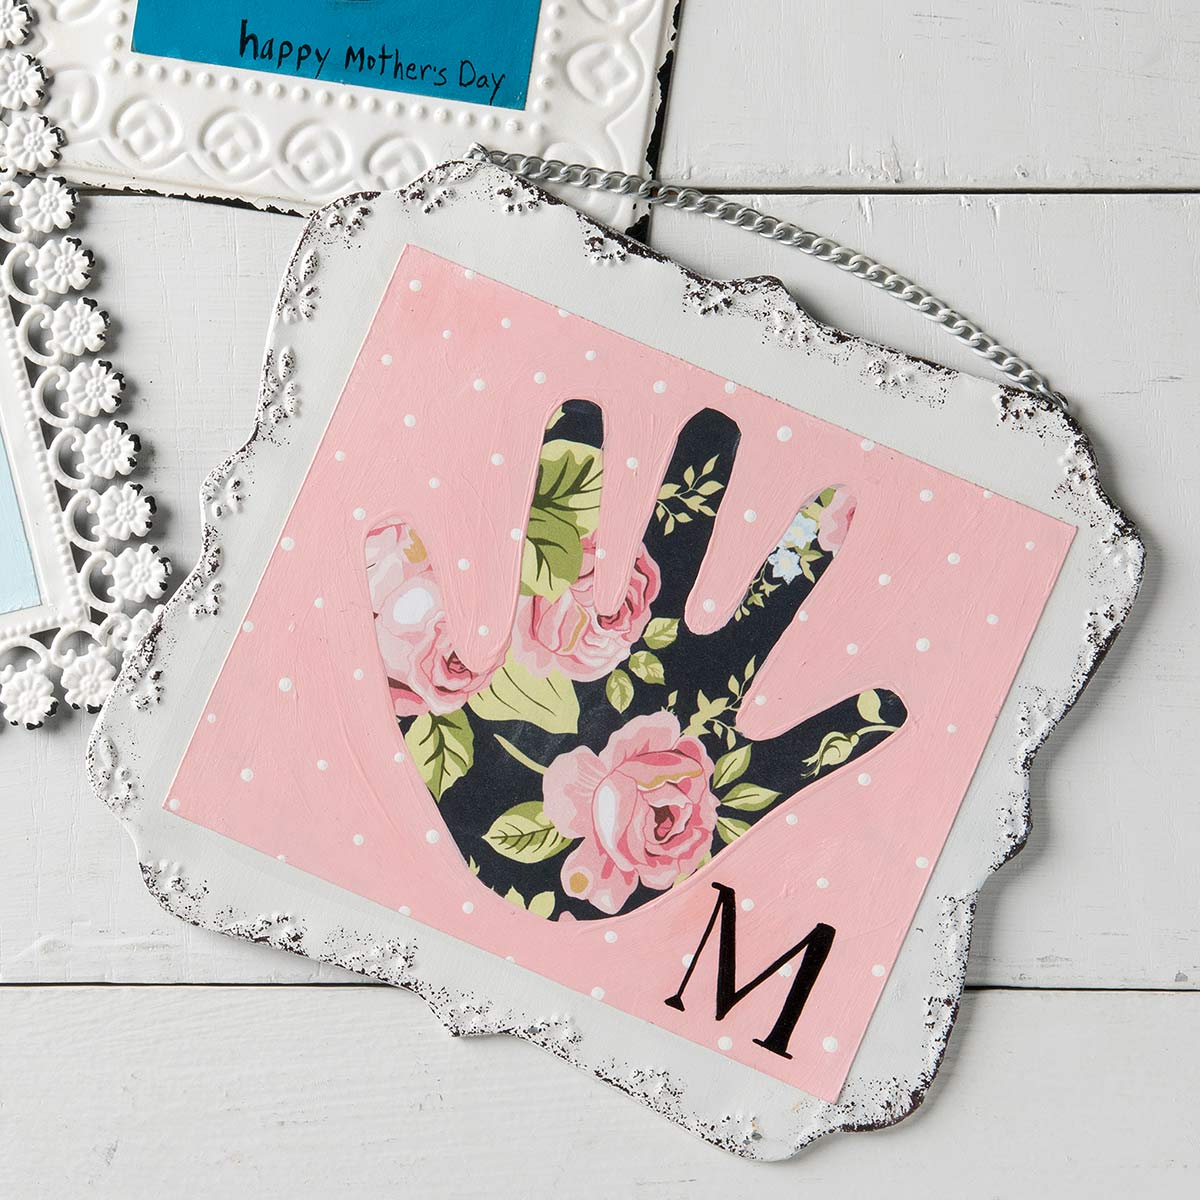 Mother's Day Handprint Craft Project for Kids